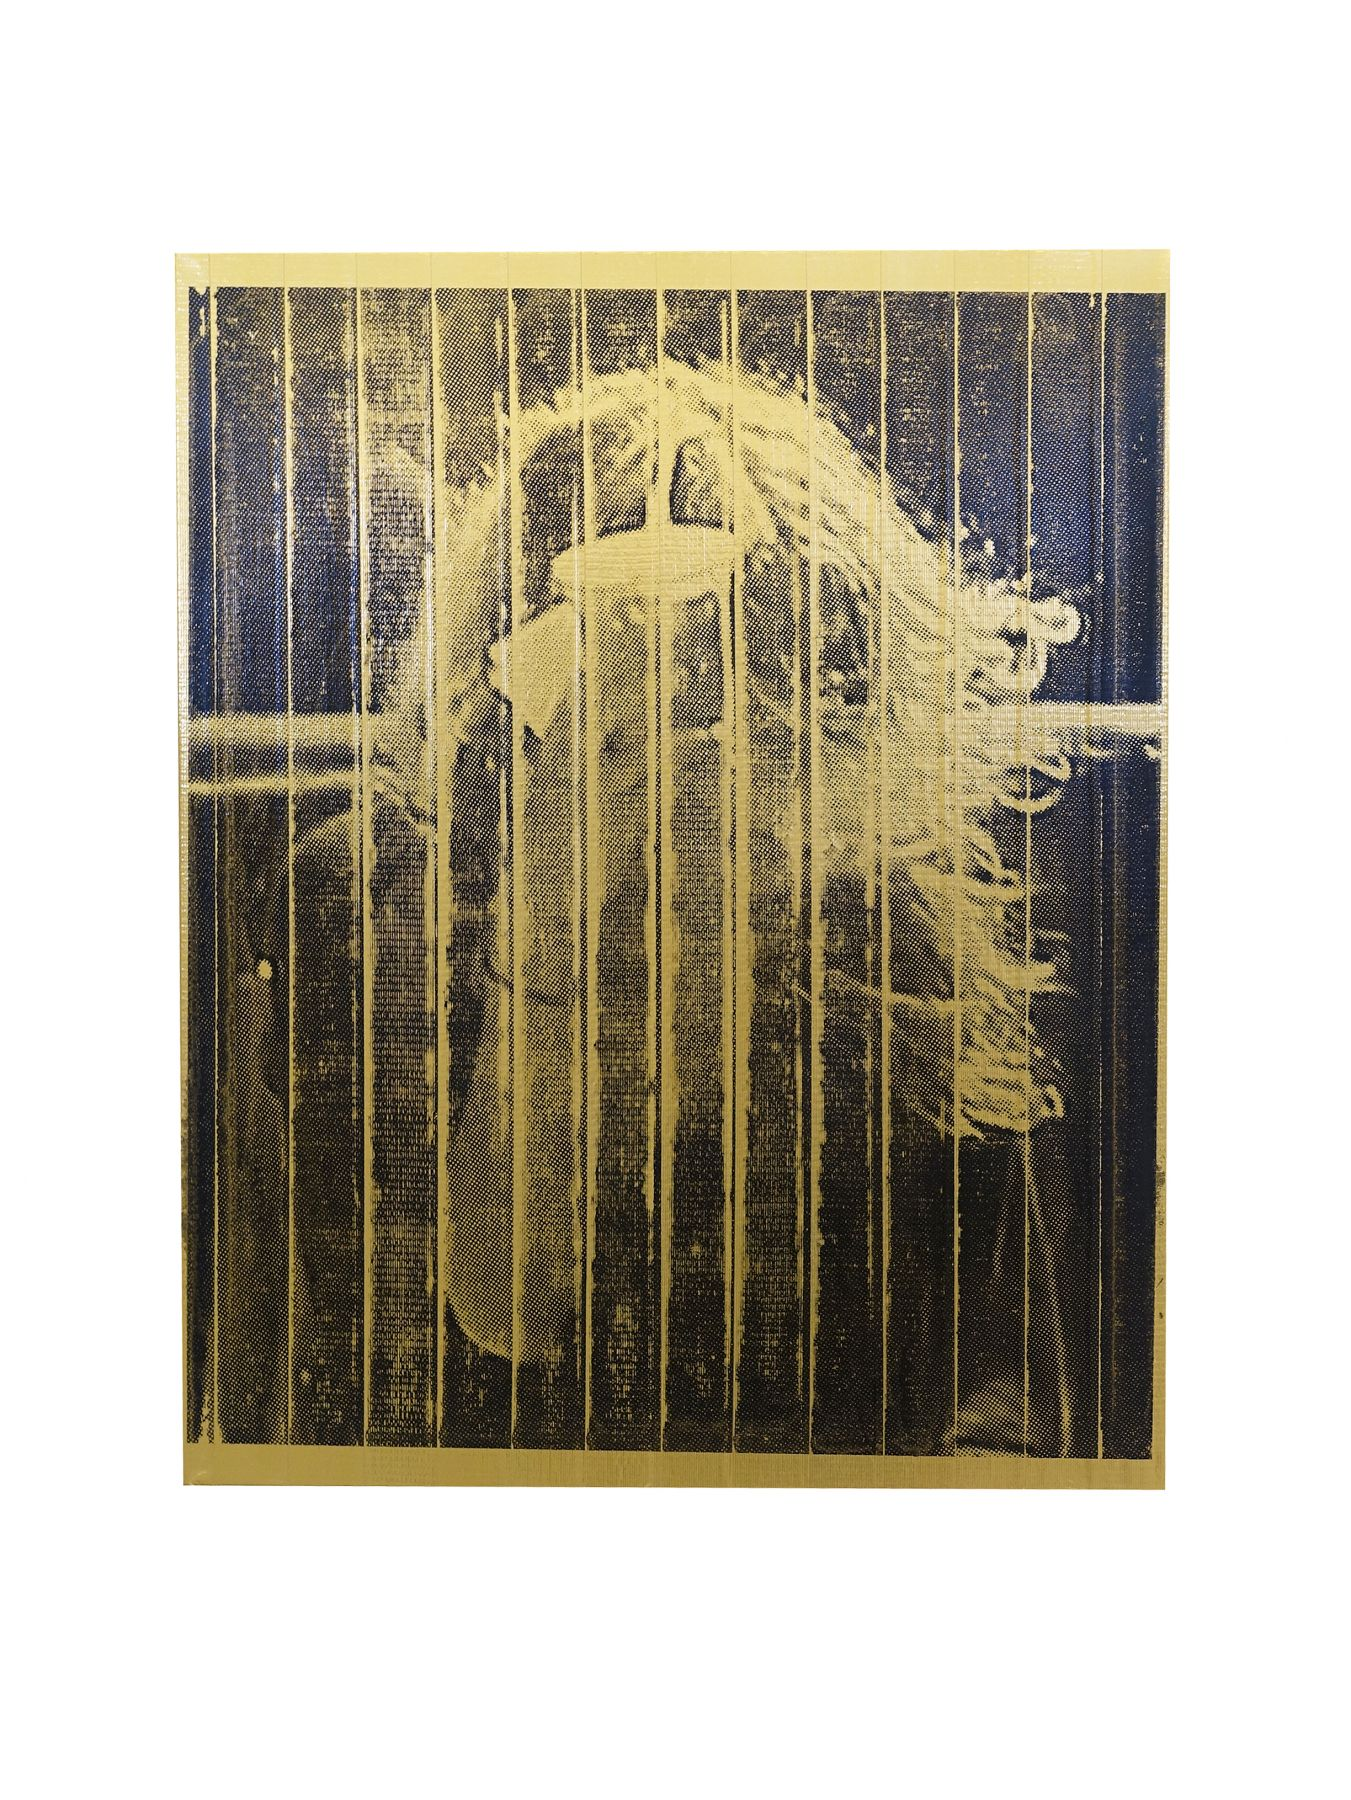 CHRIS WILLIFORD Existential Crisis (Gold Mary-Kate) 2015, screenprint and varnish on duct tape canvas, 24 x 30 inches.